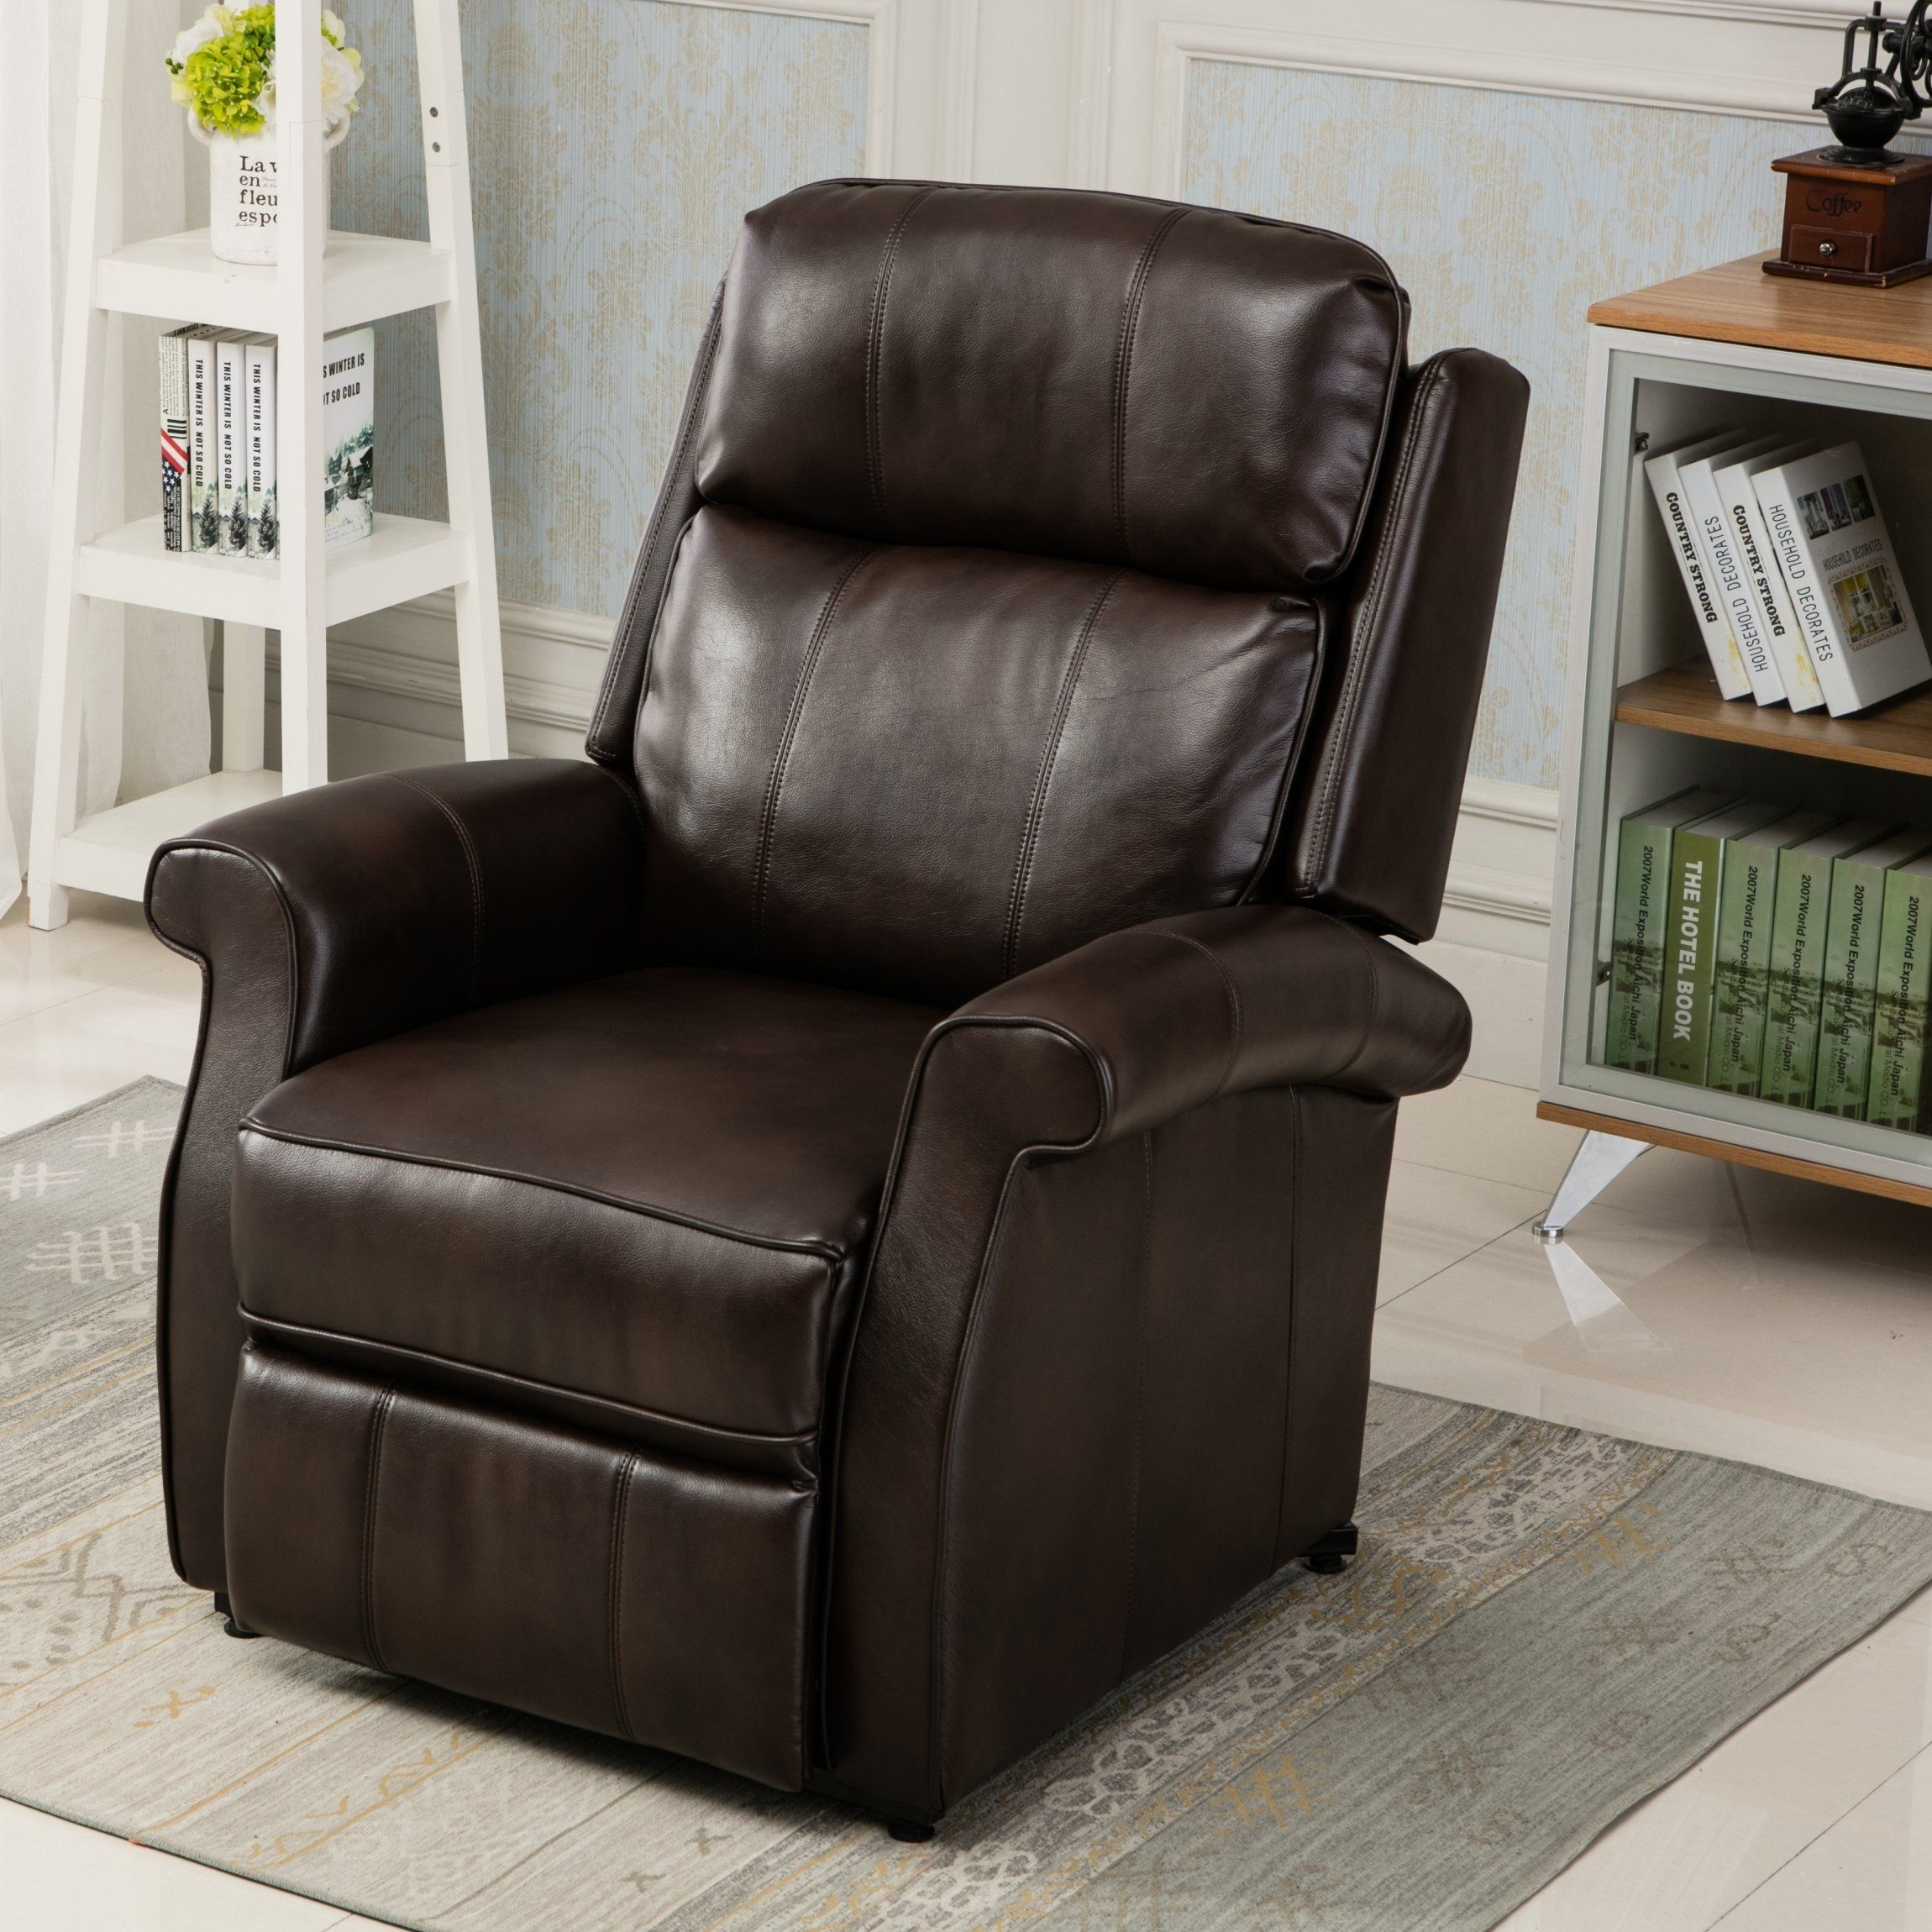 Power Recliners Leather Recliner, Adirondack chairs for